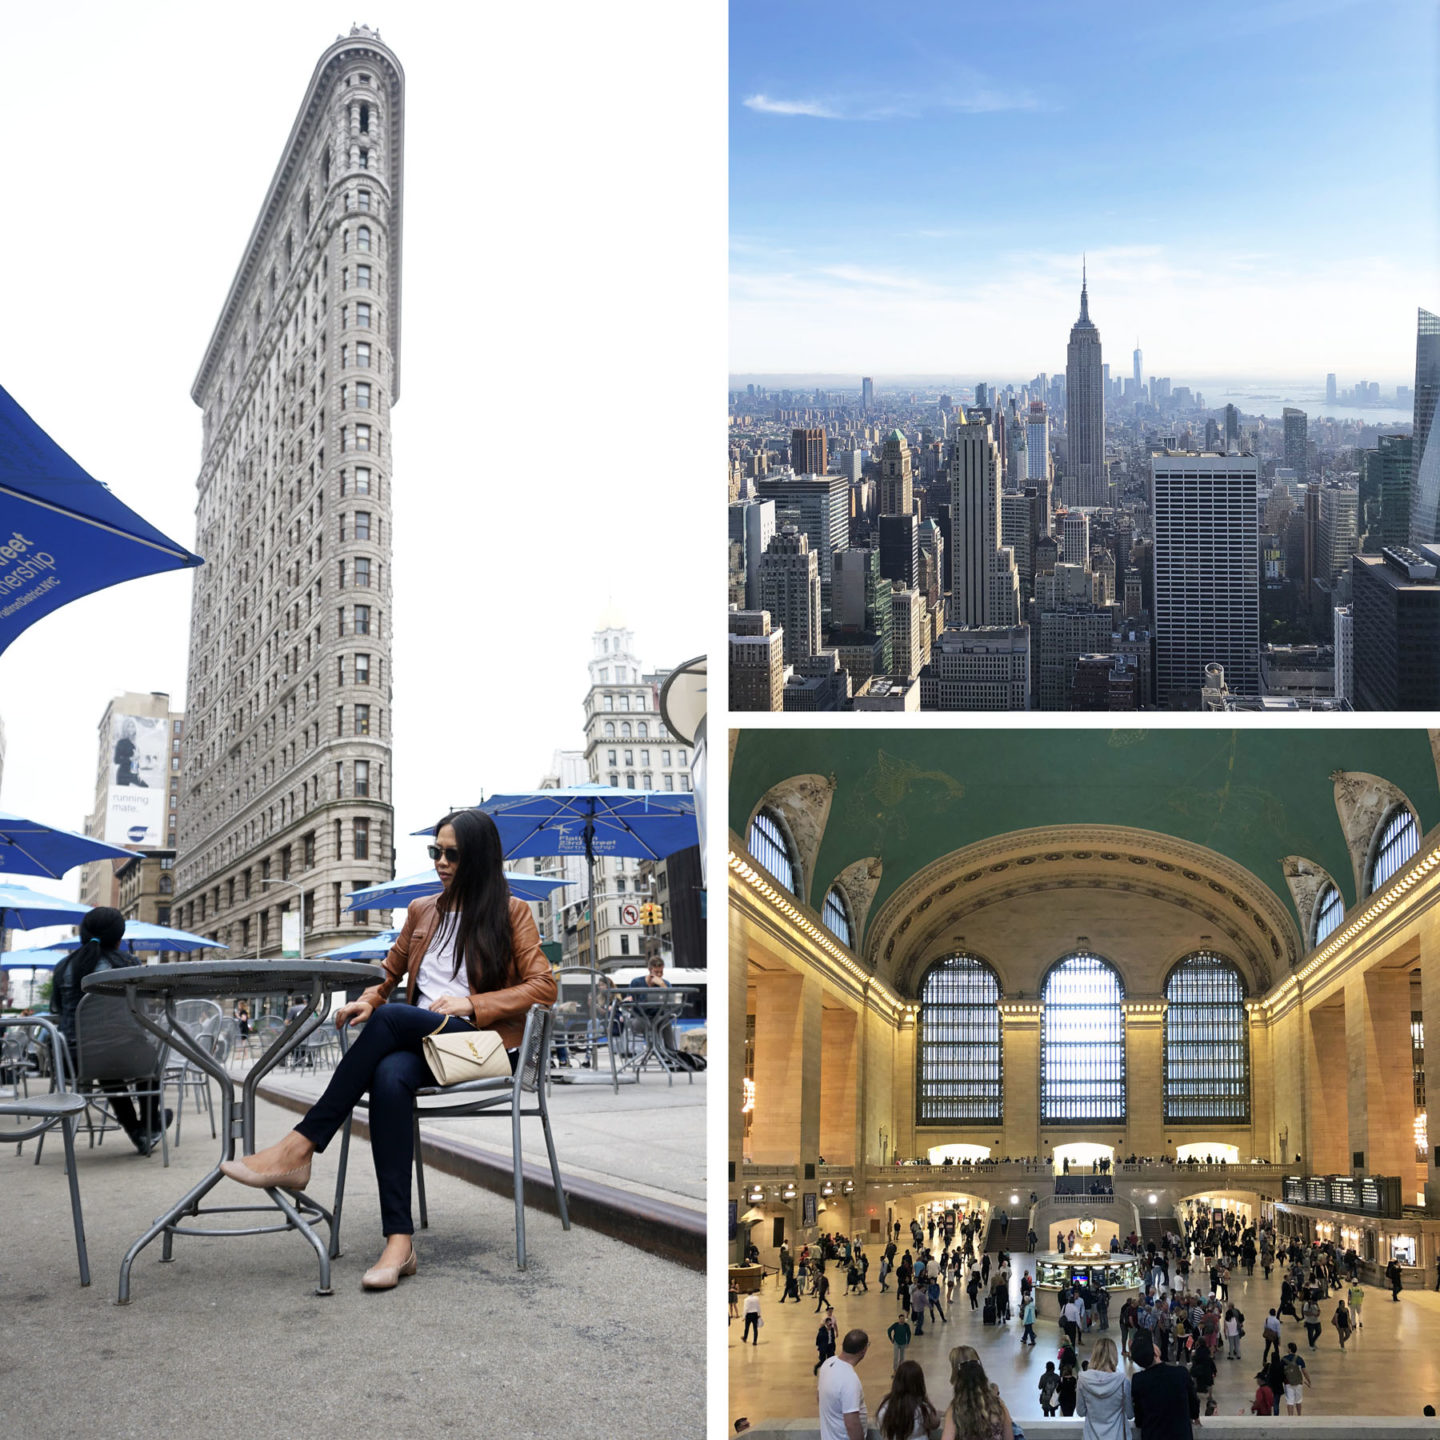 Vues de New York: Flatiron Building, Top of the Rock, Grand Central